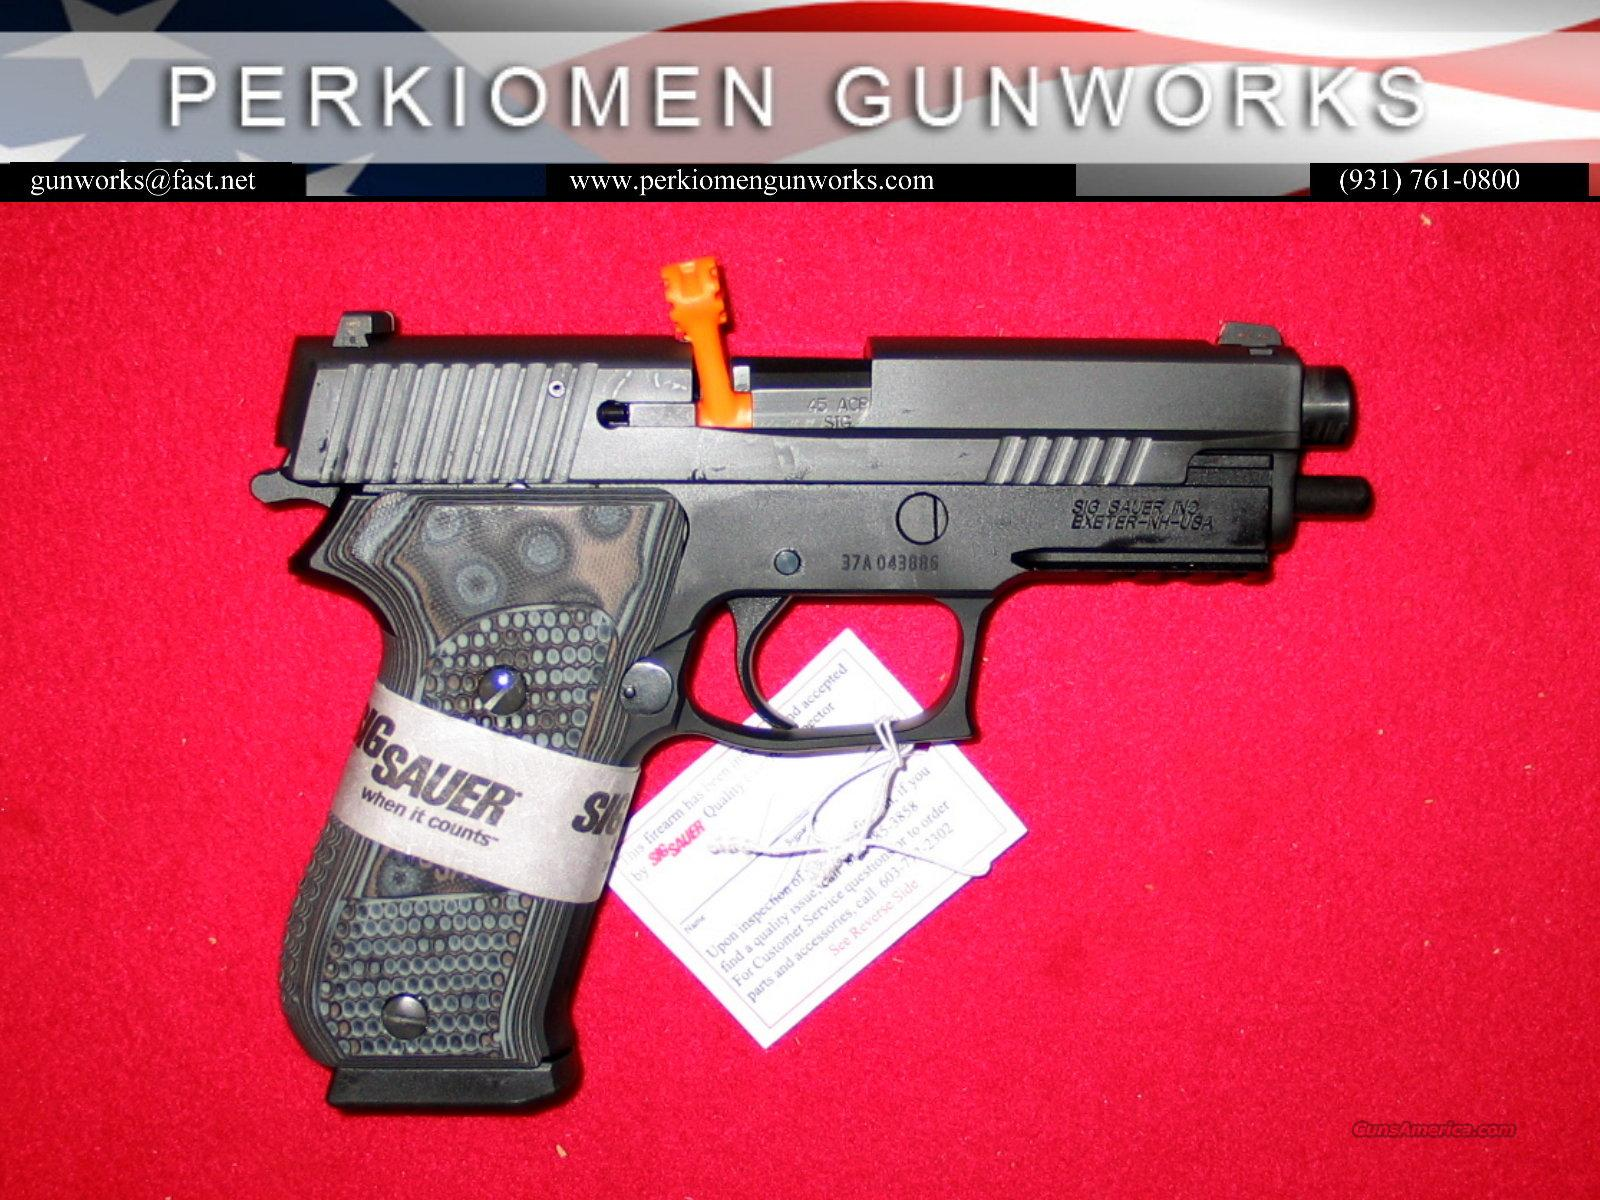 P220 Extreme .45acp, BlkGry G-10 w/Night Sights - NIB  Guns > Pistols > Sig - Sauer/Sigarms Pistols > P220